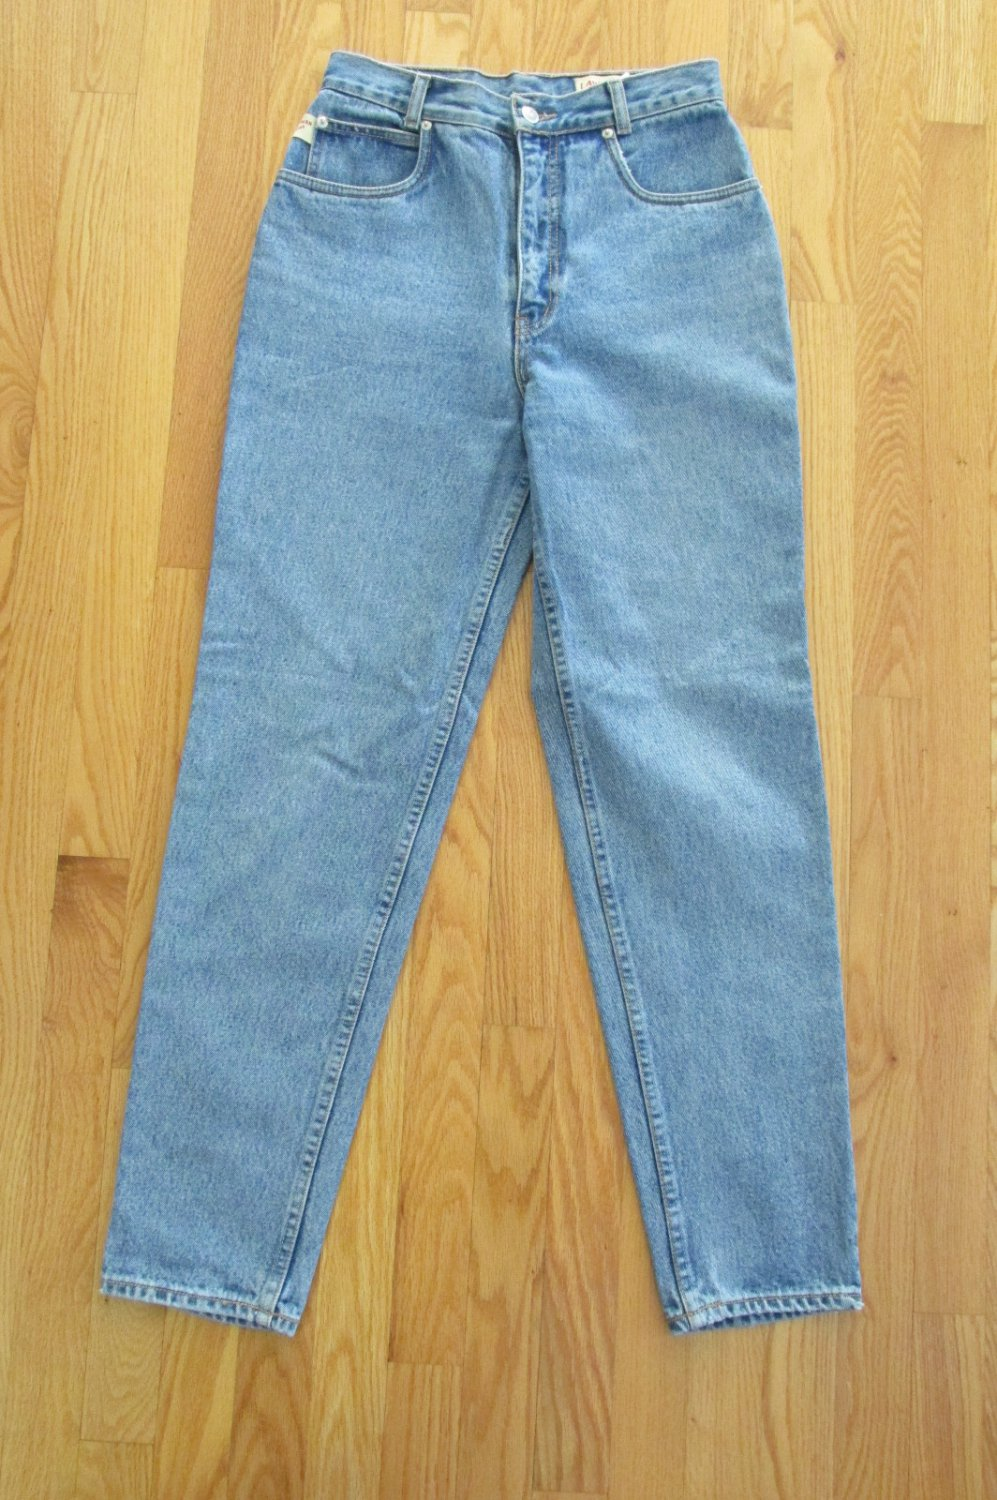 LAWMAN WOMEN'S JUNIOR'S SIZE 9 JEANS STONE WASHED TAPERED LEG MOM HIGH WAIST COUNTRY WESTERN VINTAGE